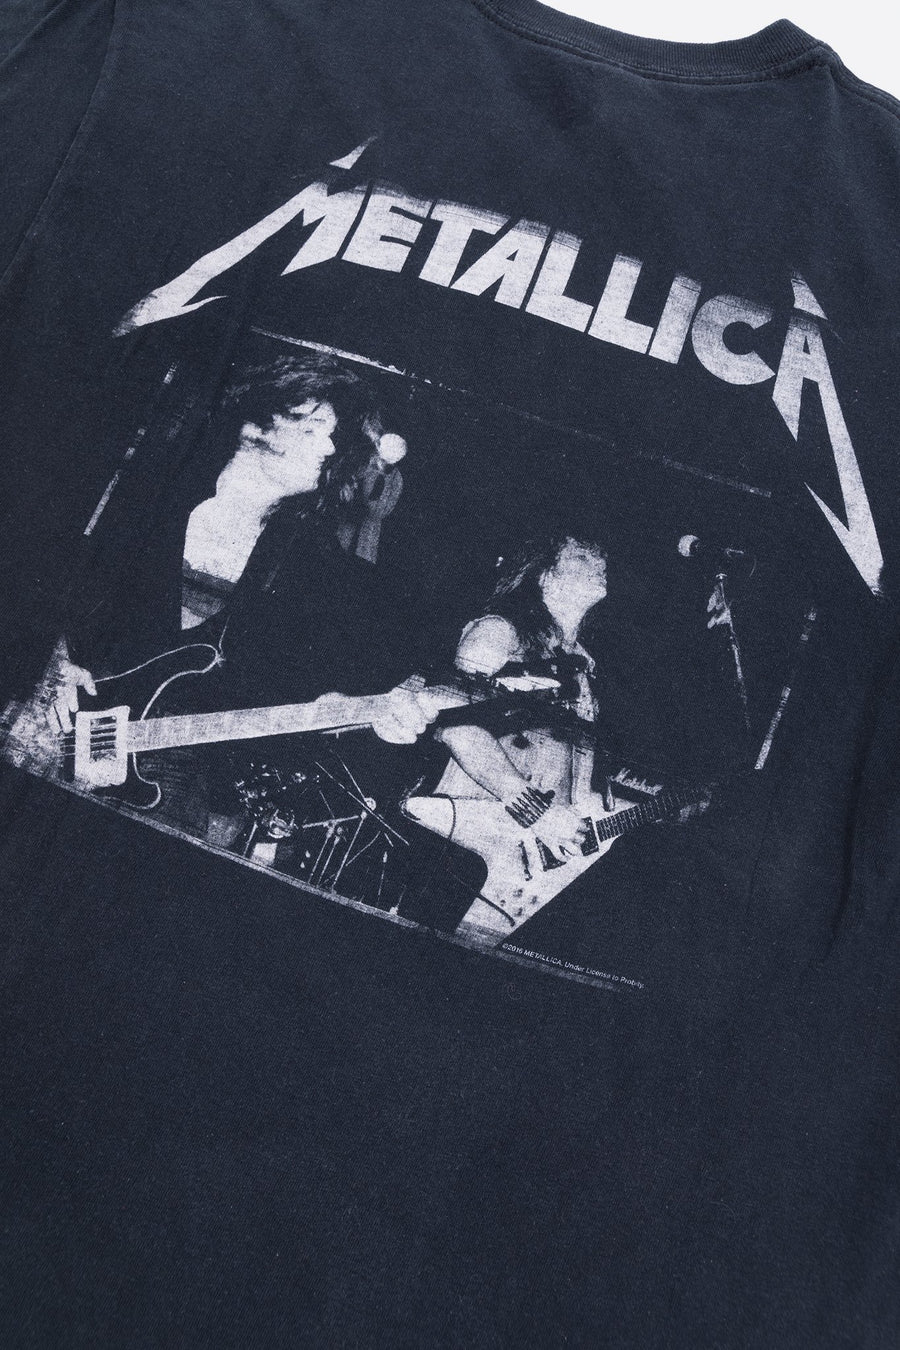 T-shirt Metallica The Young Metal Attack - WASTED PARIS